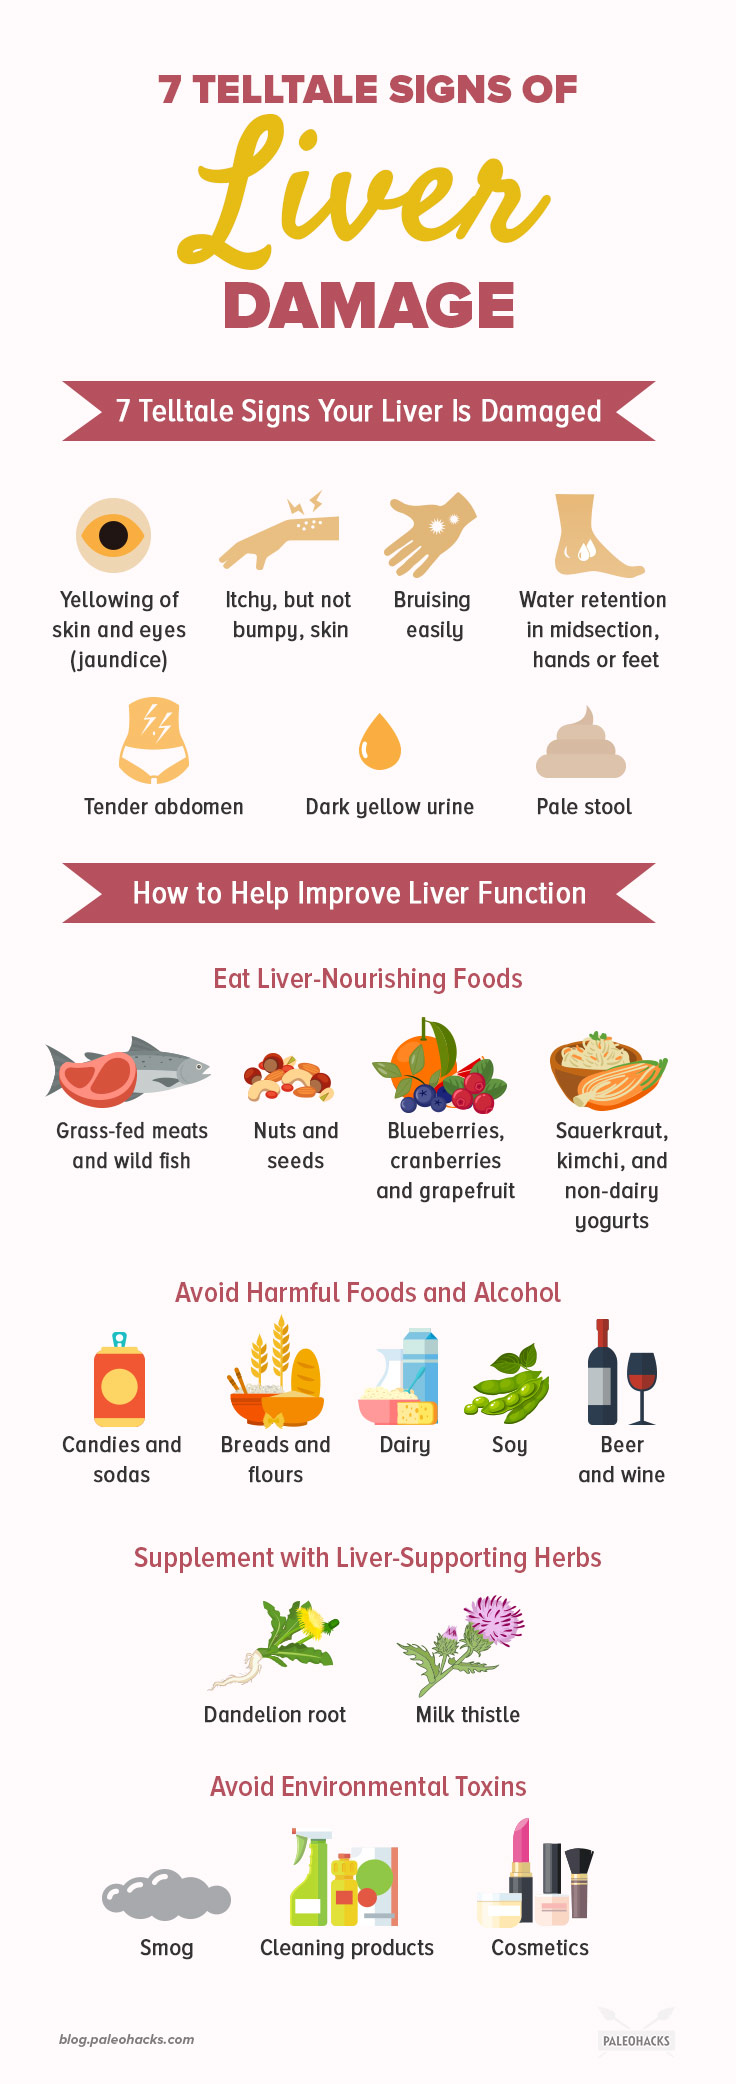 Signs of liver problems from alcohol advise